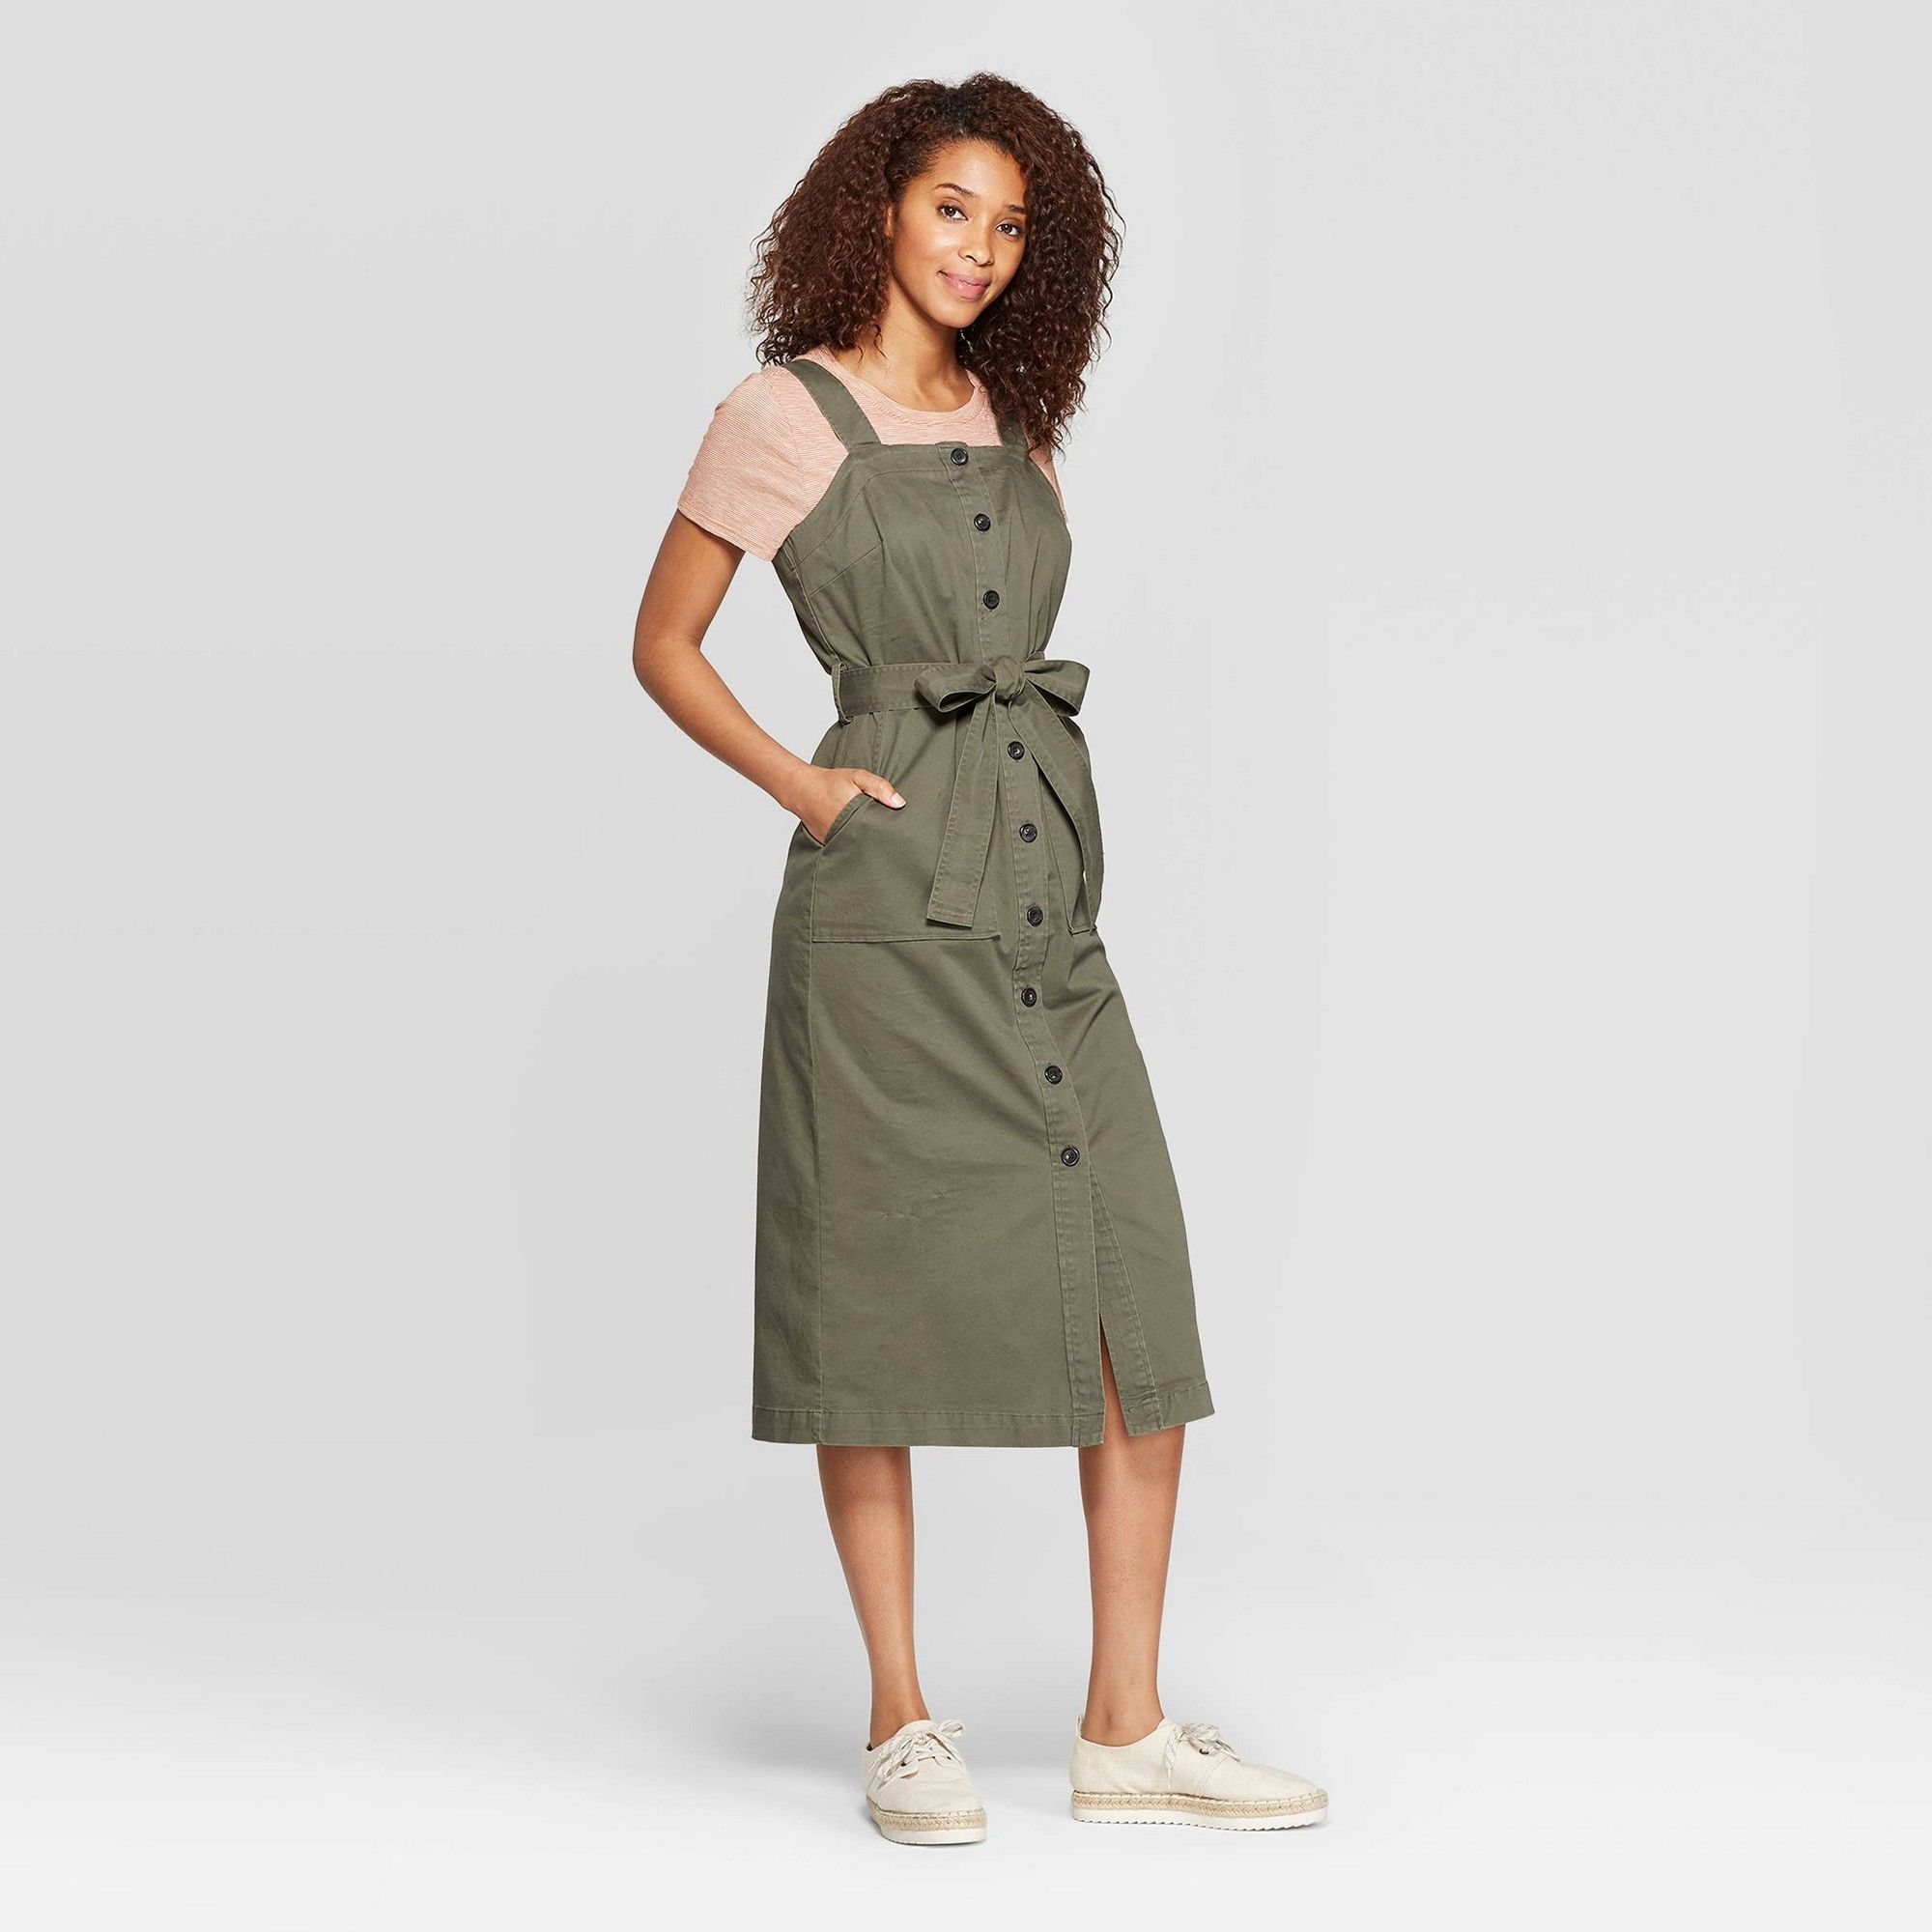 Women S Sleeveless Square Neck Midi Button Front Belted Dress Universal Thread Olive Green Xxl Belted Midi Dress Belted Dress Midi Dress Sleeveless [ 2000 x 2000 Pixel ]